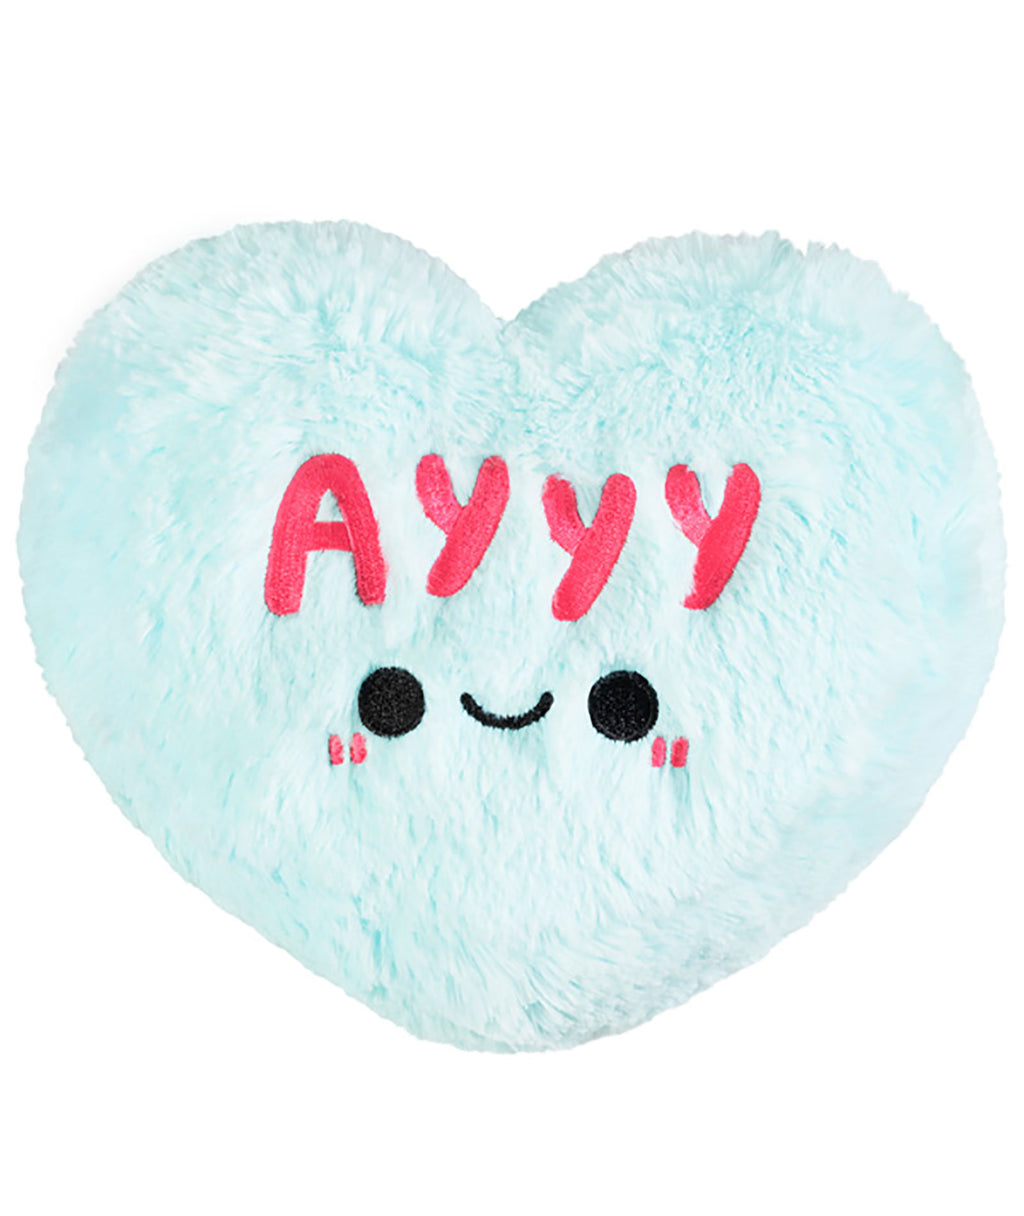 Squishable Blue Candy Heart AYYY Pillow